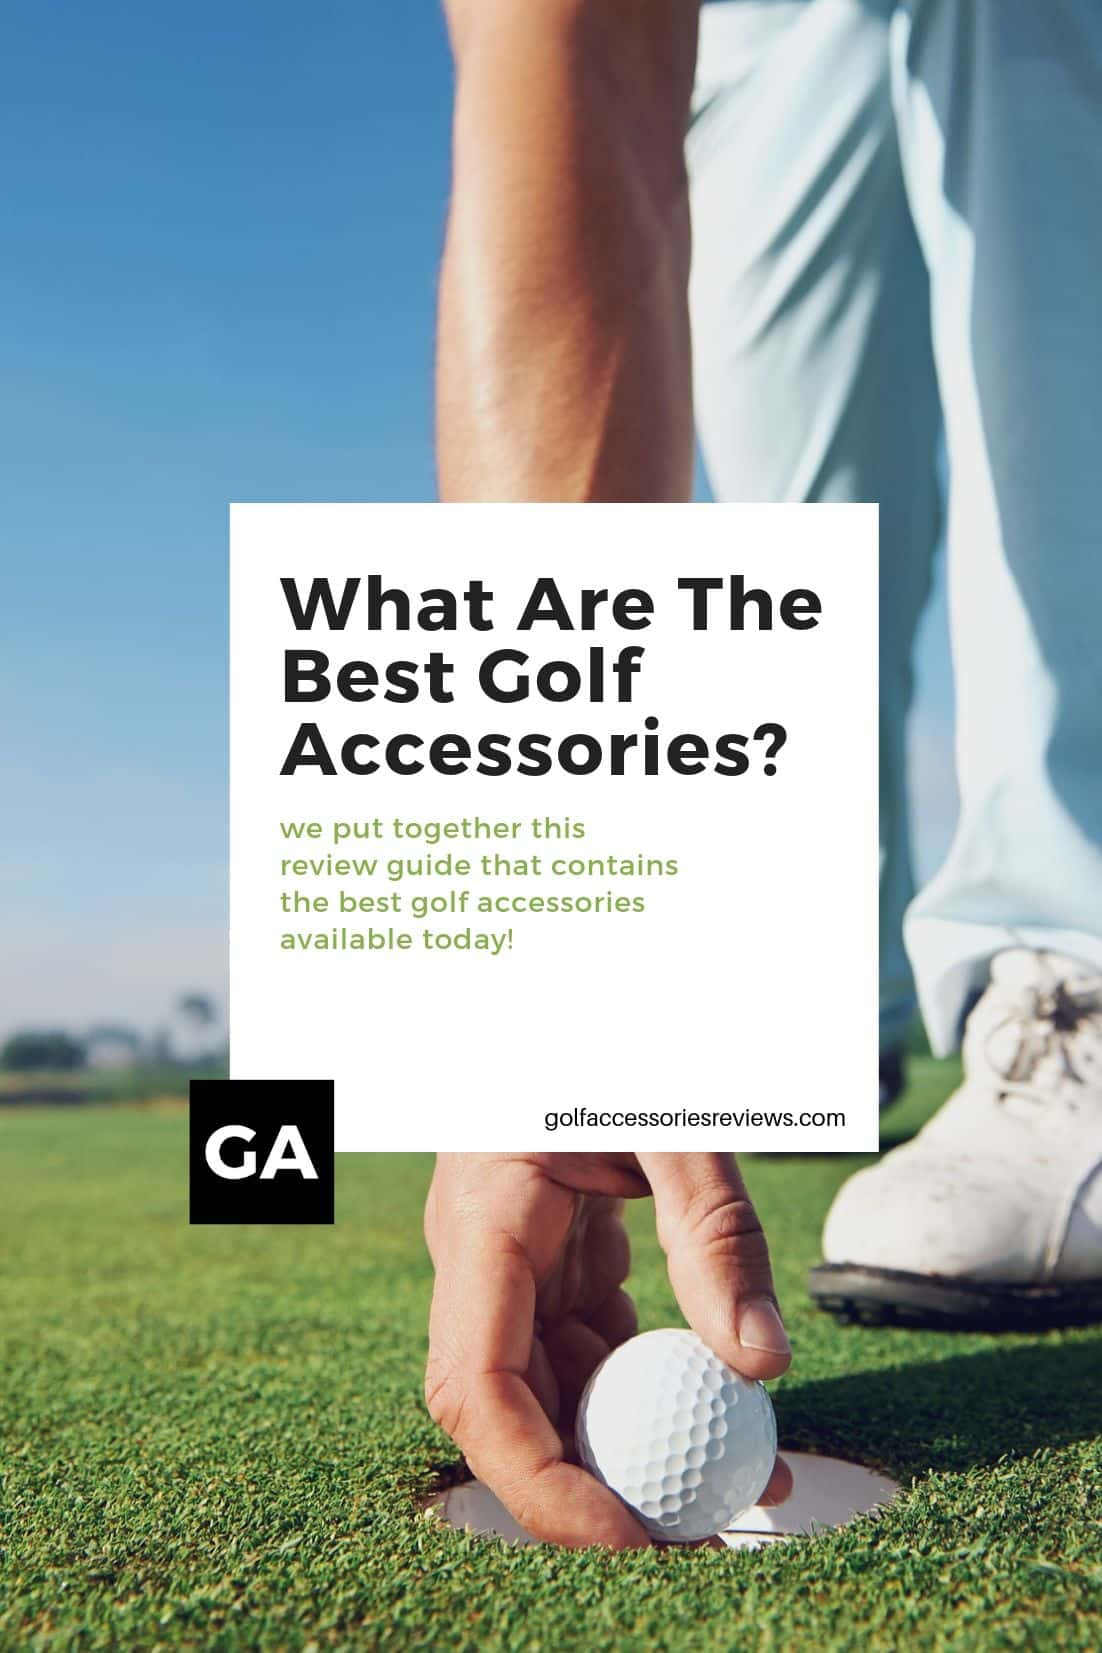 what are the best golf accessories image of a guy picking up a golf ball